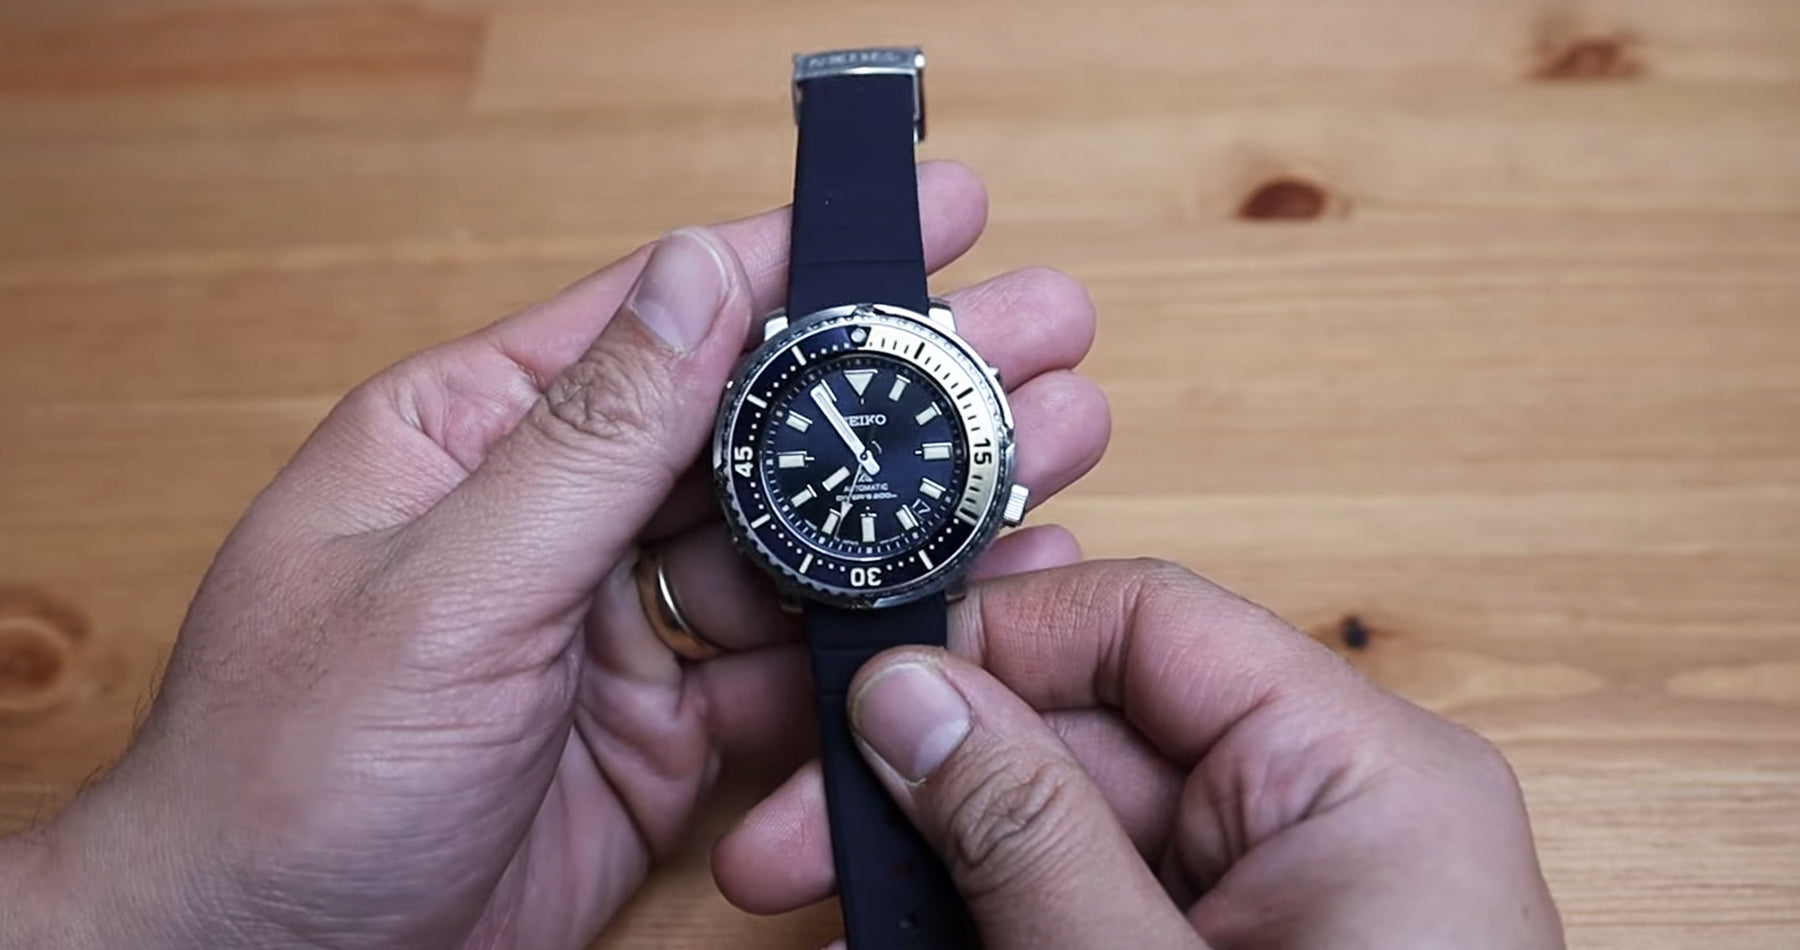 Unboxing Seiko Prospex Street Series Baby Tuna SBDY073 Diver Watch with Leo (Mandarin Ver.)